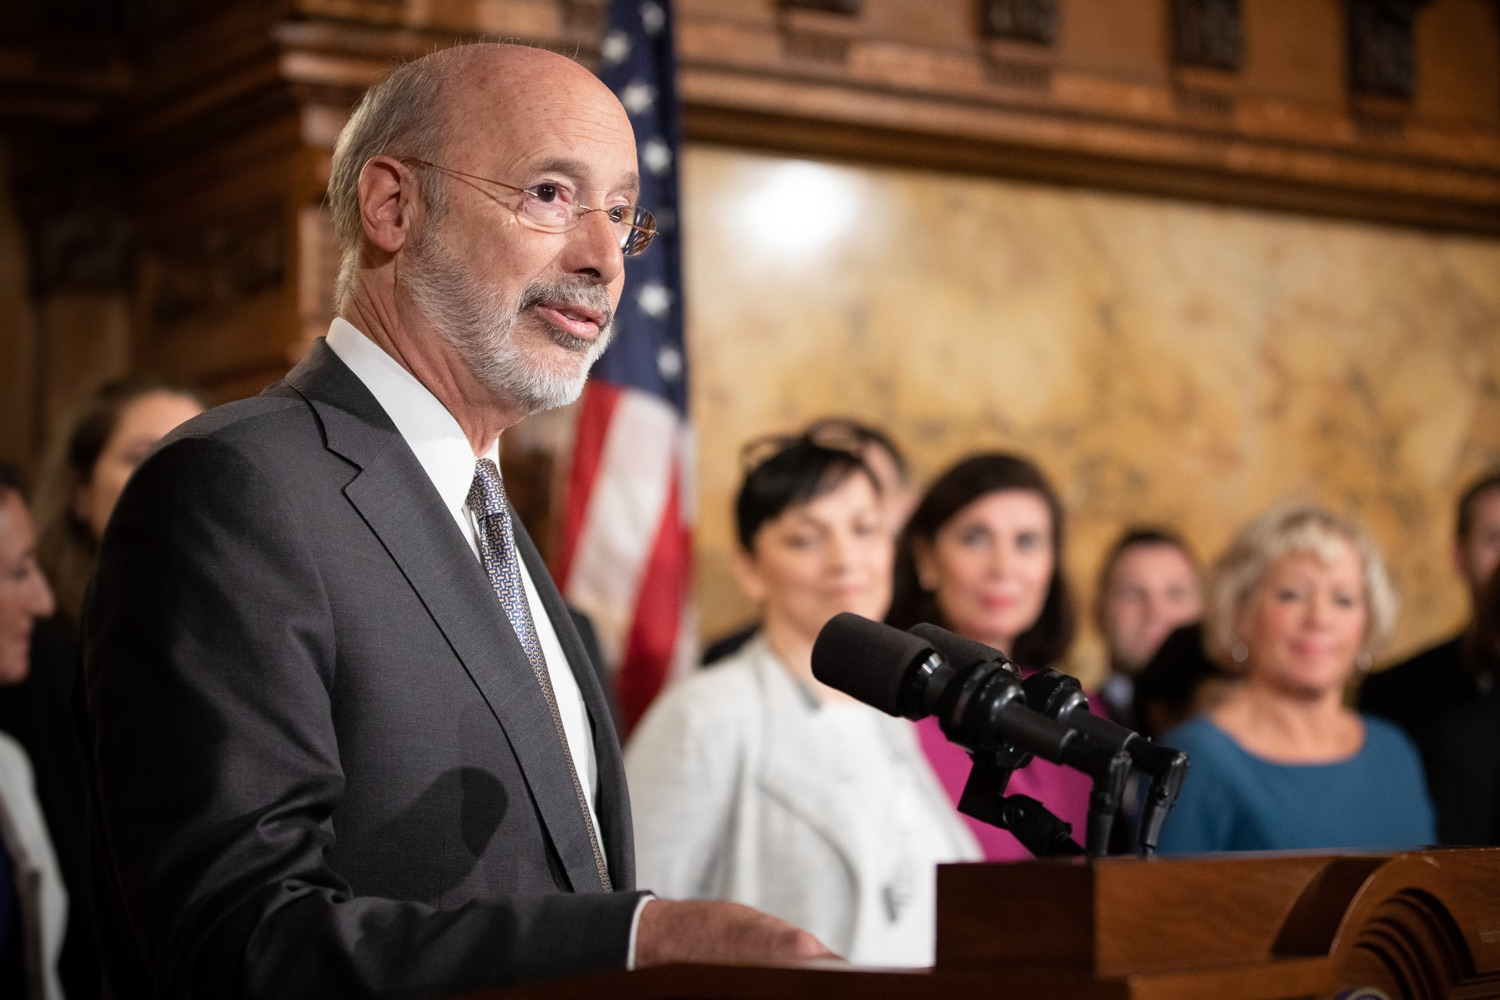 "<a href=""http://filesource.abacast.com/commonwealthofpa/photo/17554_gov_voter_reform_bill_dz_005.jpg"" target=""_blank"">⇣ Download Photo<br></a>Harrisburg, PA  Governor Tom Wolf speaks at the Election Reform Bill signing. Governor Wolf made voting more convenient and secure by signing Act 77 of 2019, the most significant improvement to Pennsylvanias elections in more than 80 years. The bipartisan compromise legislation takes effect for the April 2020 primary election and makes Pennsylvania a national leader with voter-friendly election reforms."